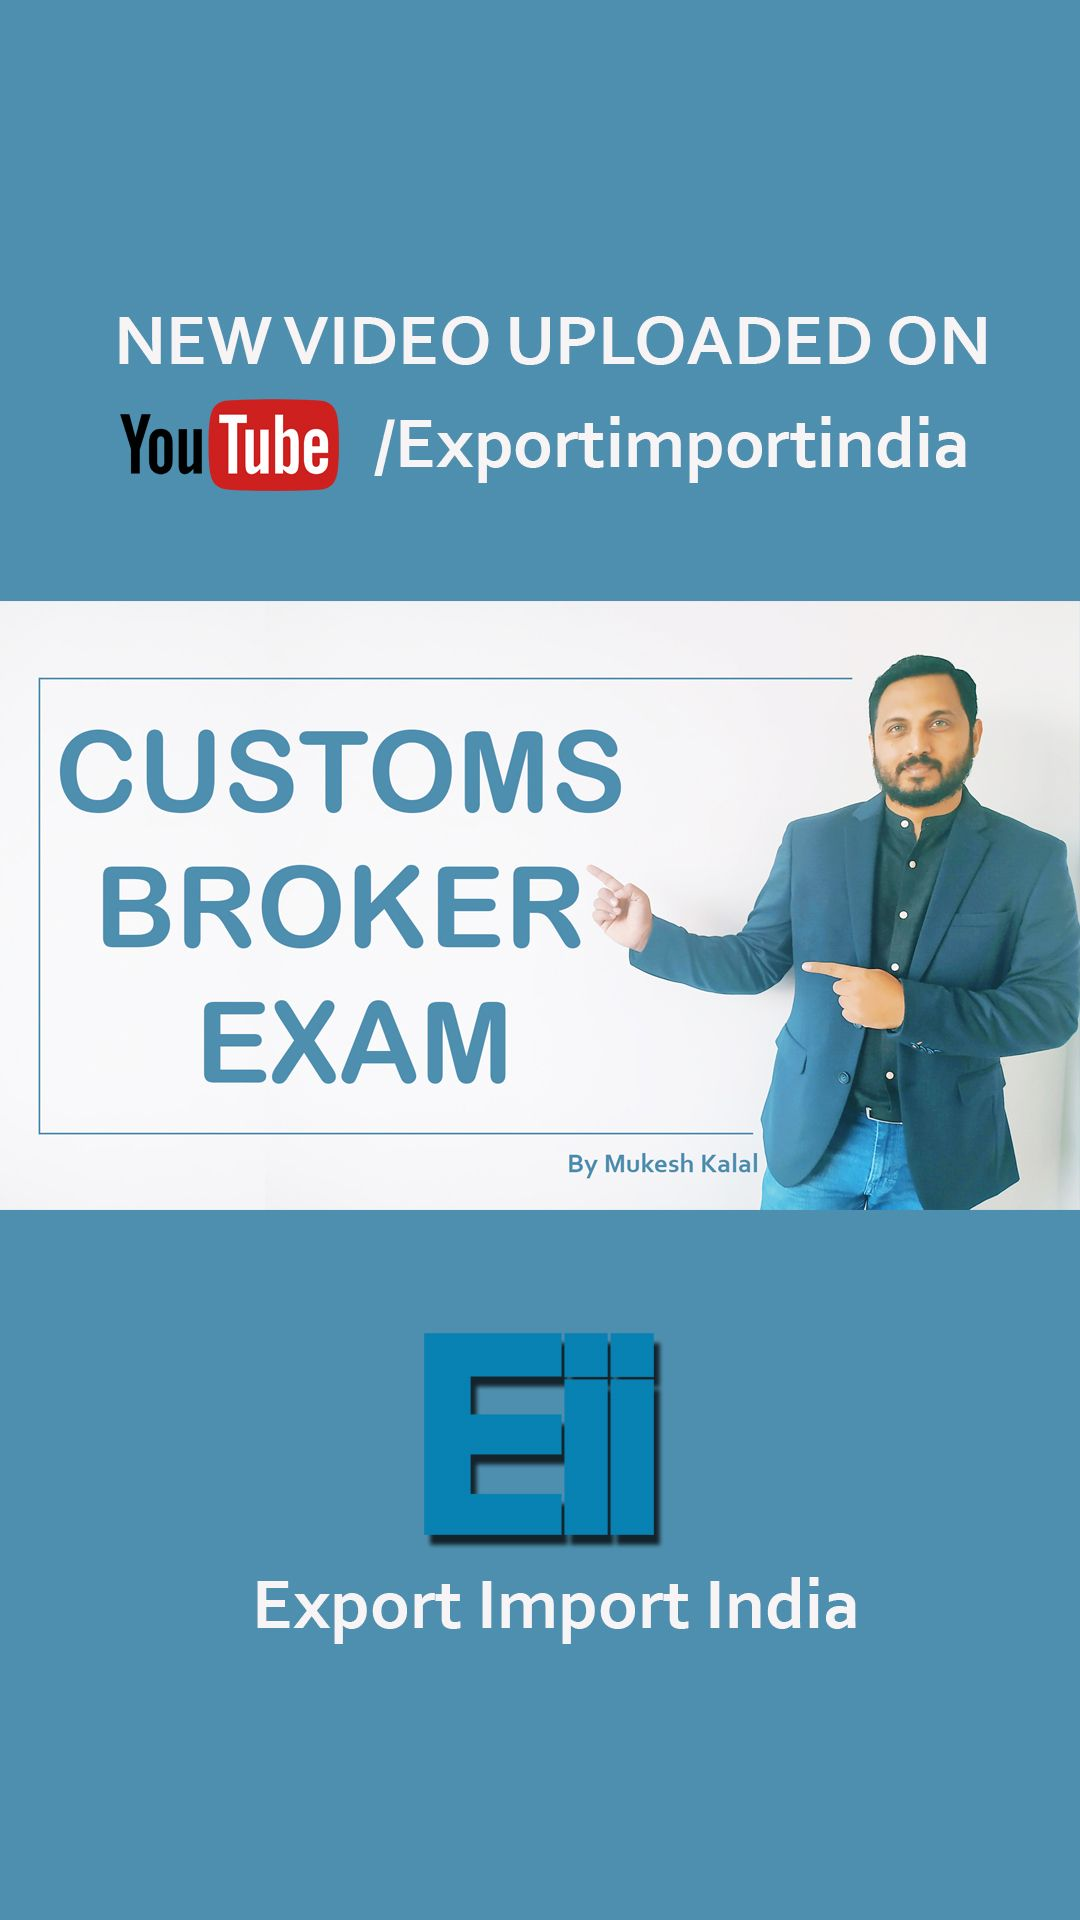 In this video you will learn all about Customs broker exam